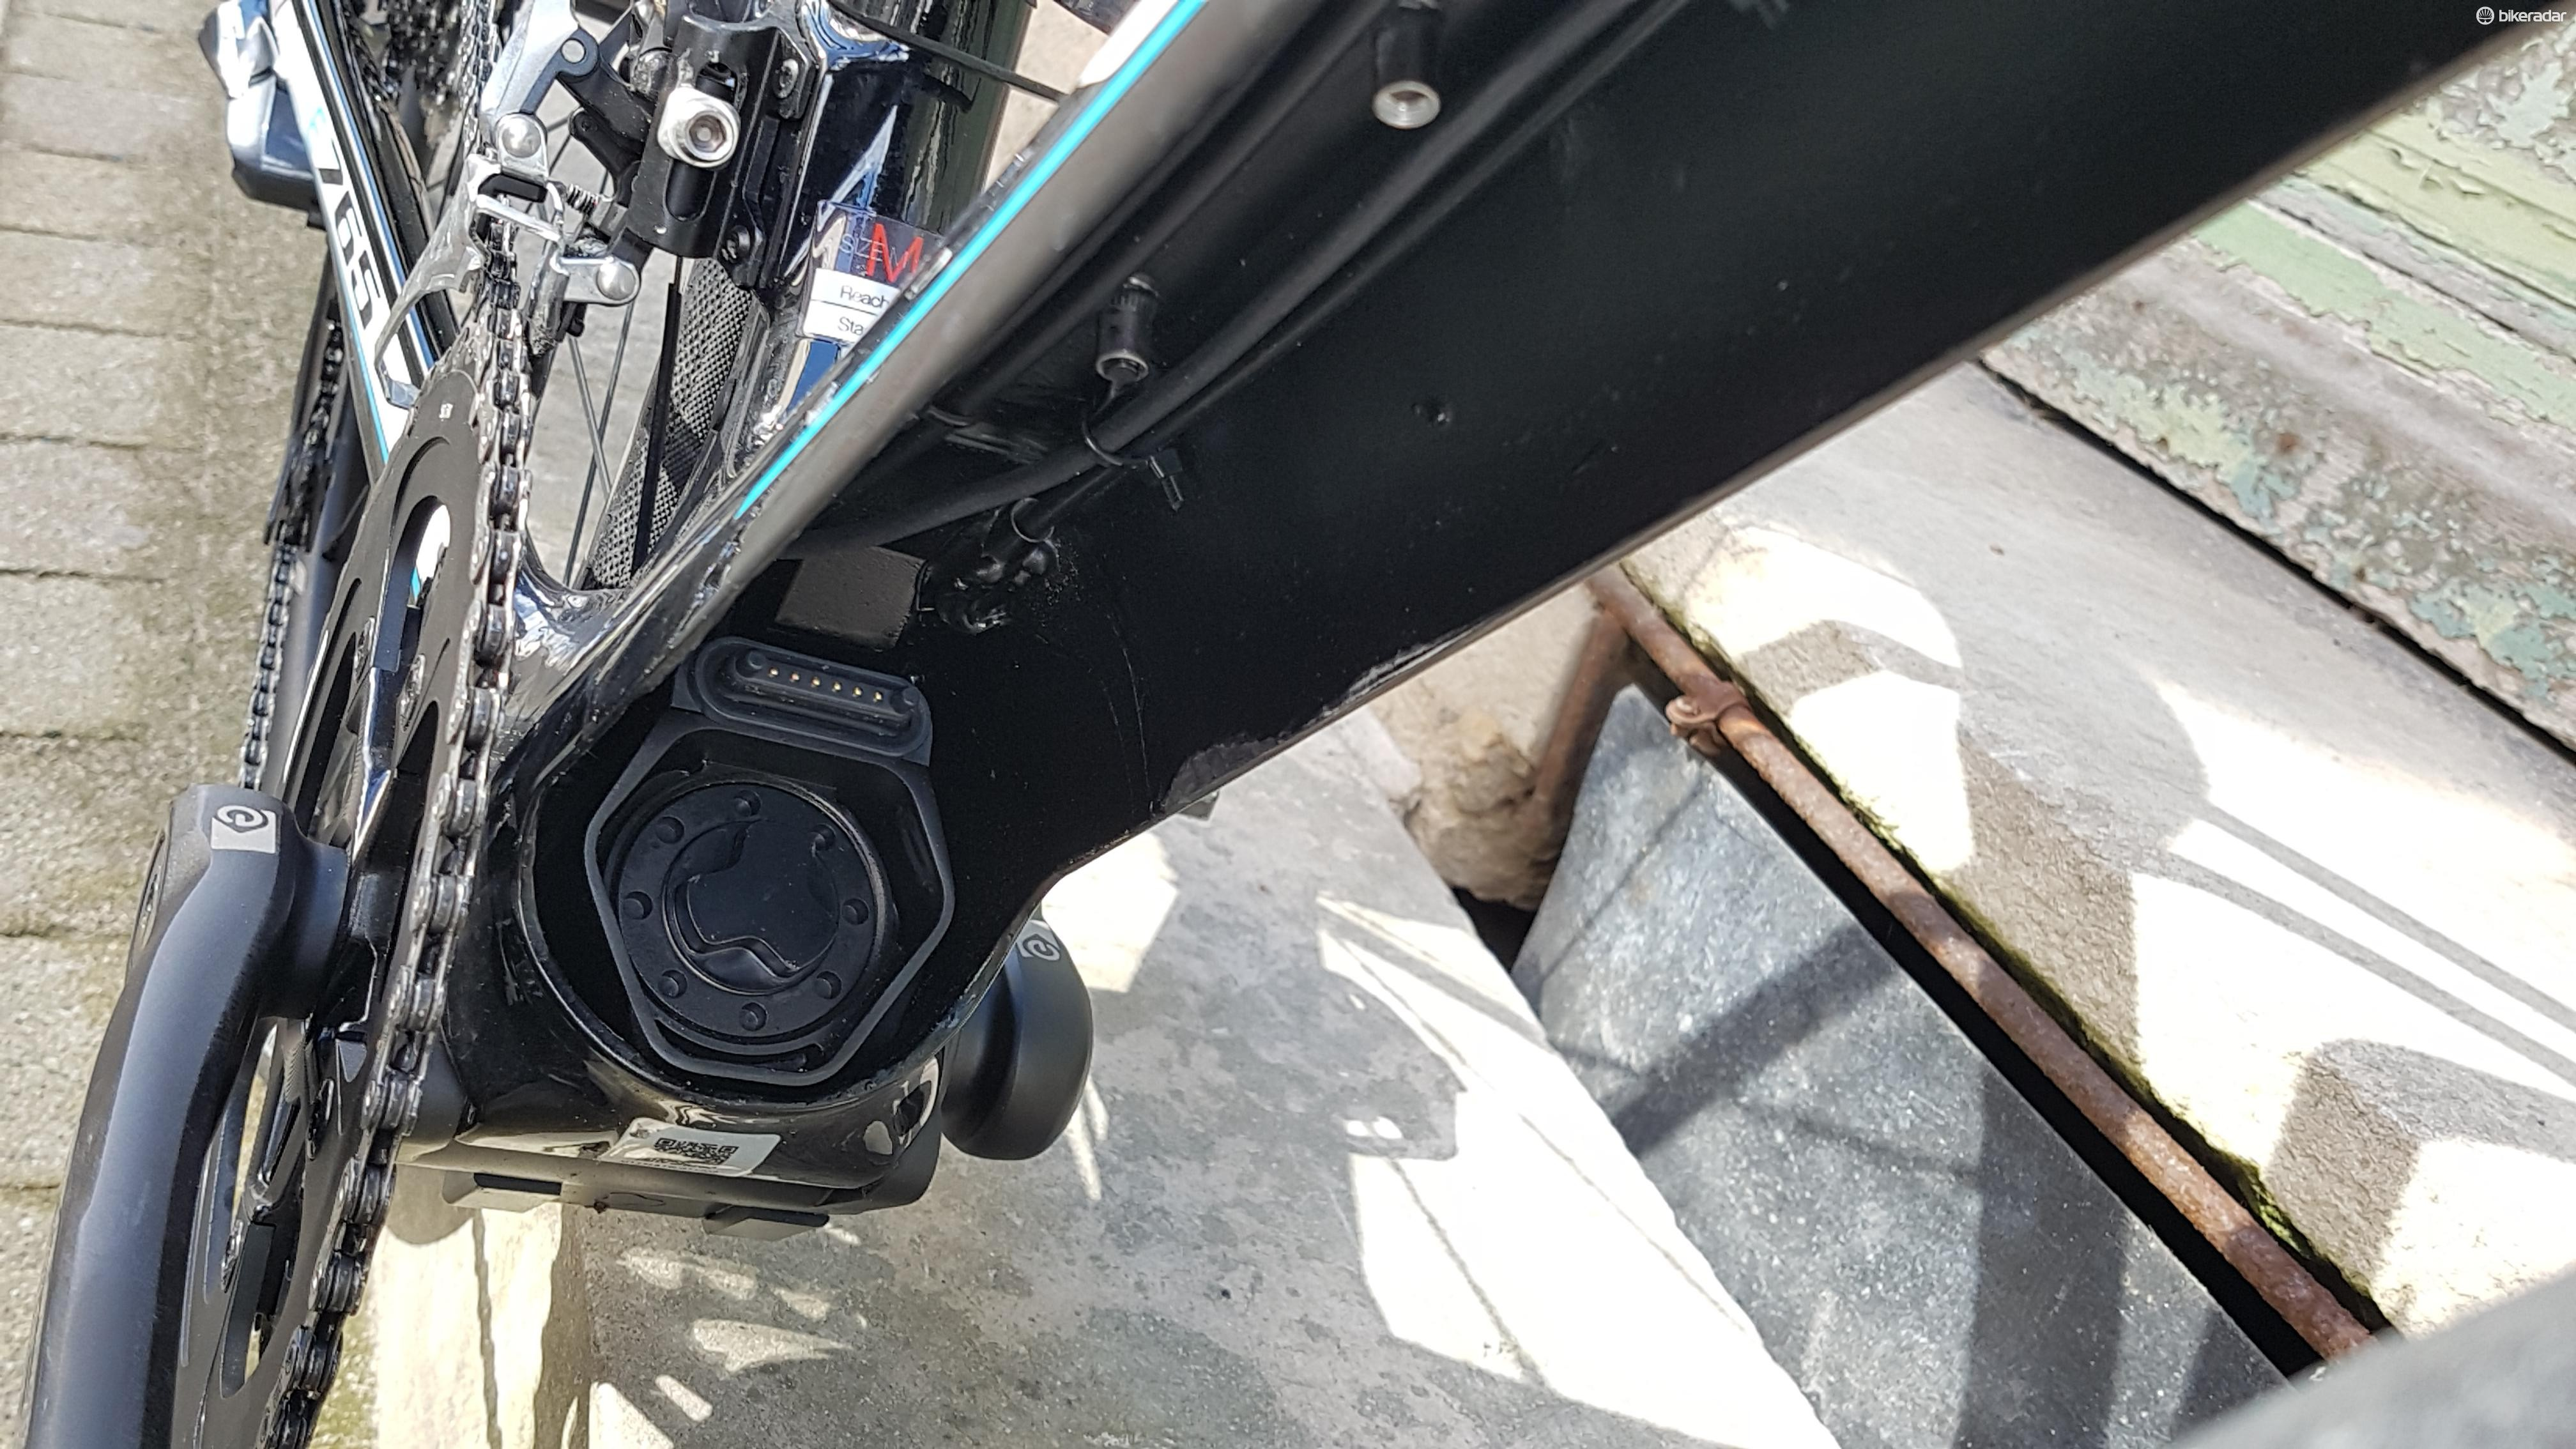 The BB from Fazua weighs around a kilo, and is bolted in to the frame